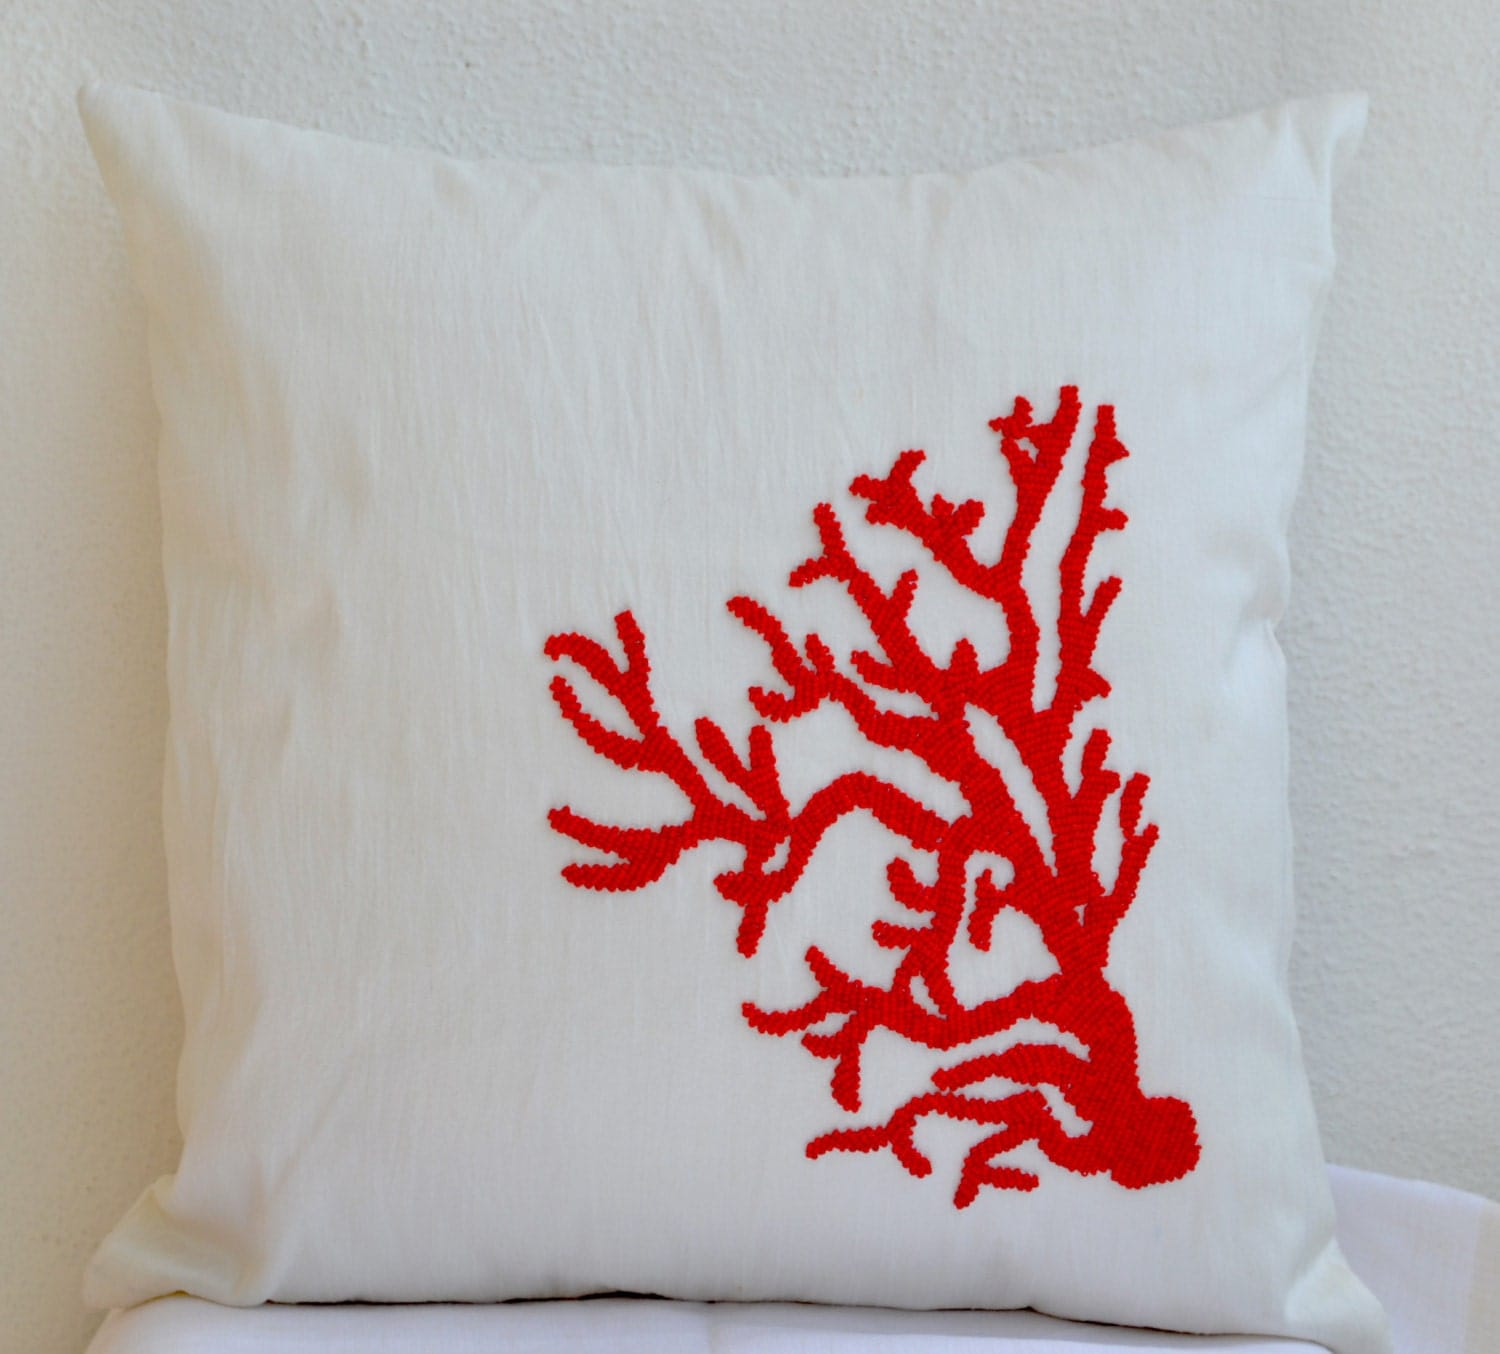 Coral Pillow Red White Pillow Decorative Throw Pillow Cover